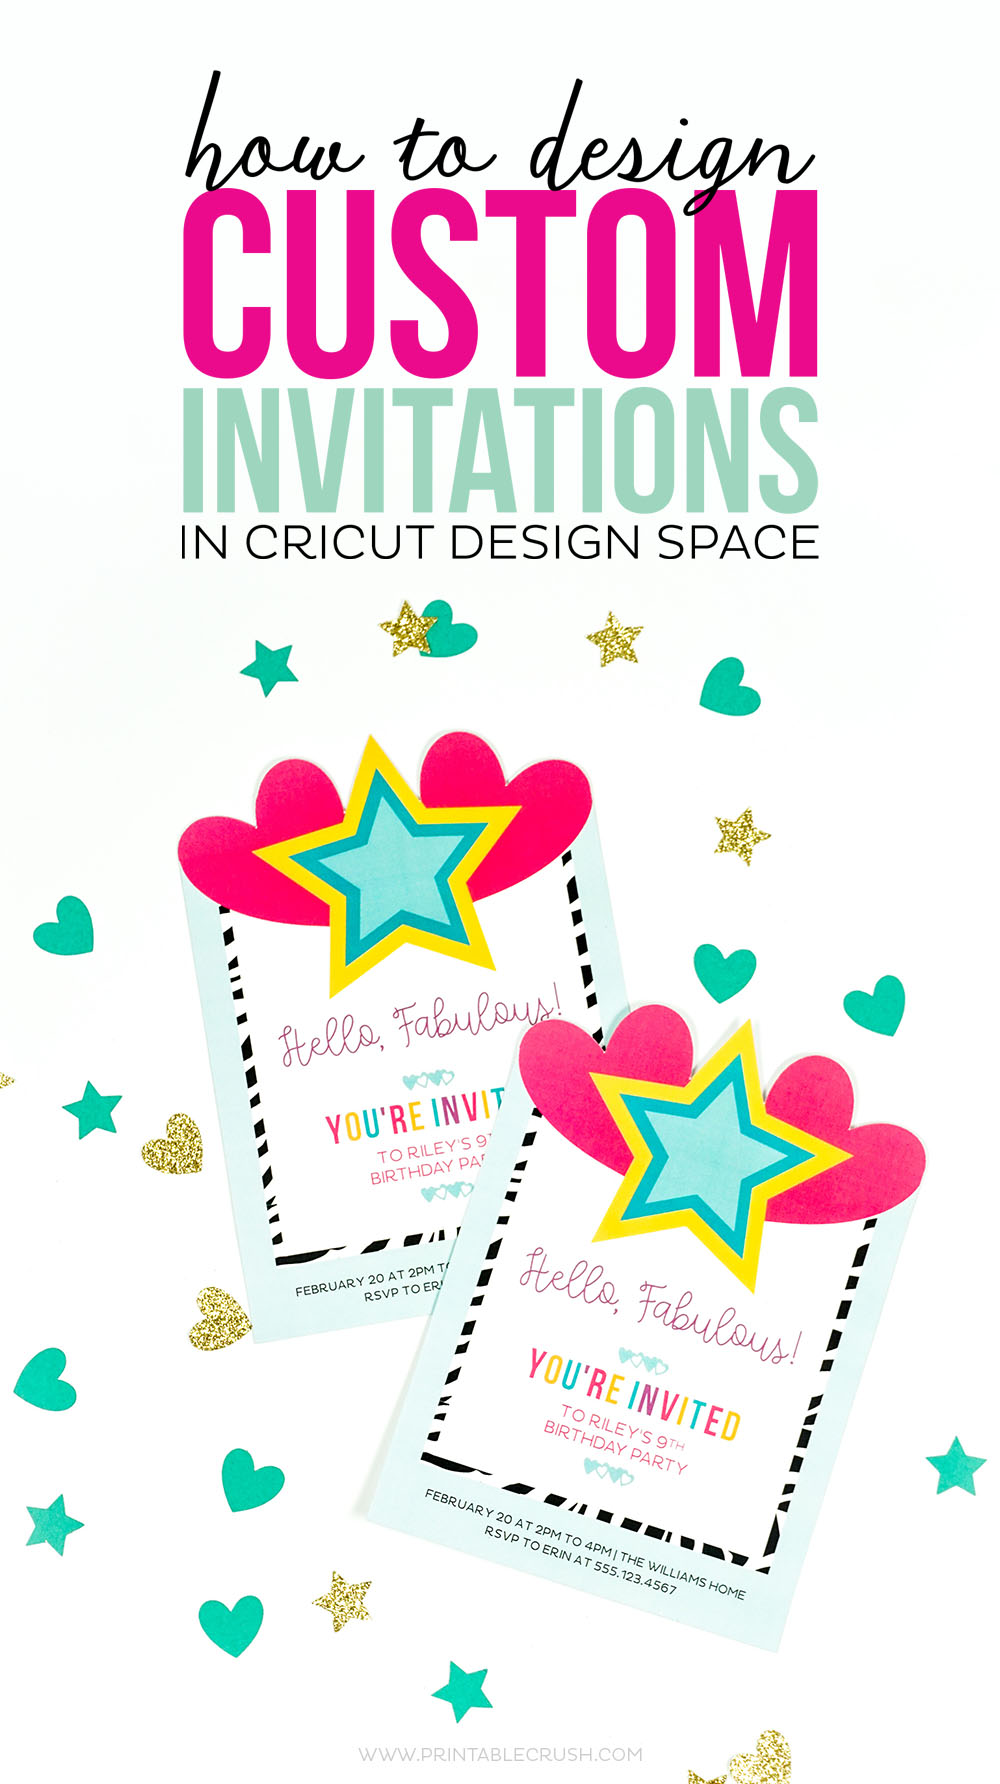 Colorful custom invitations with gold and teal confetti for invitation design post